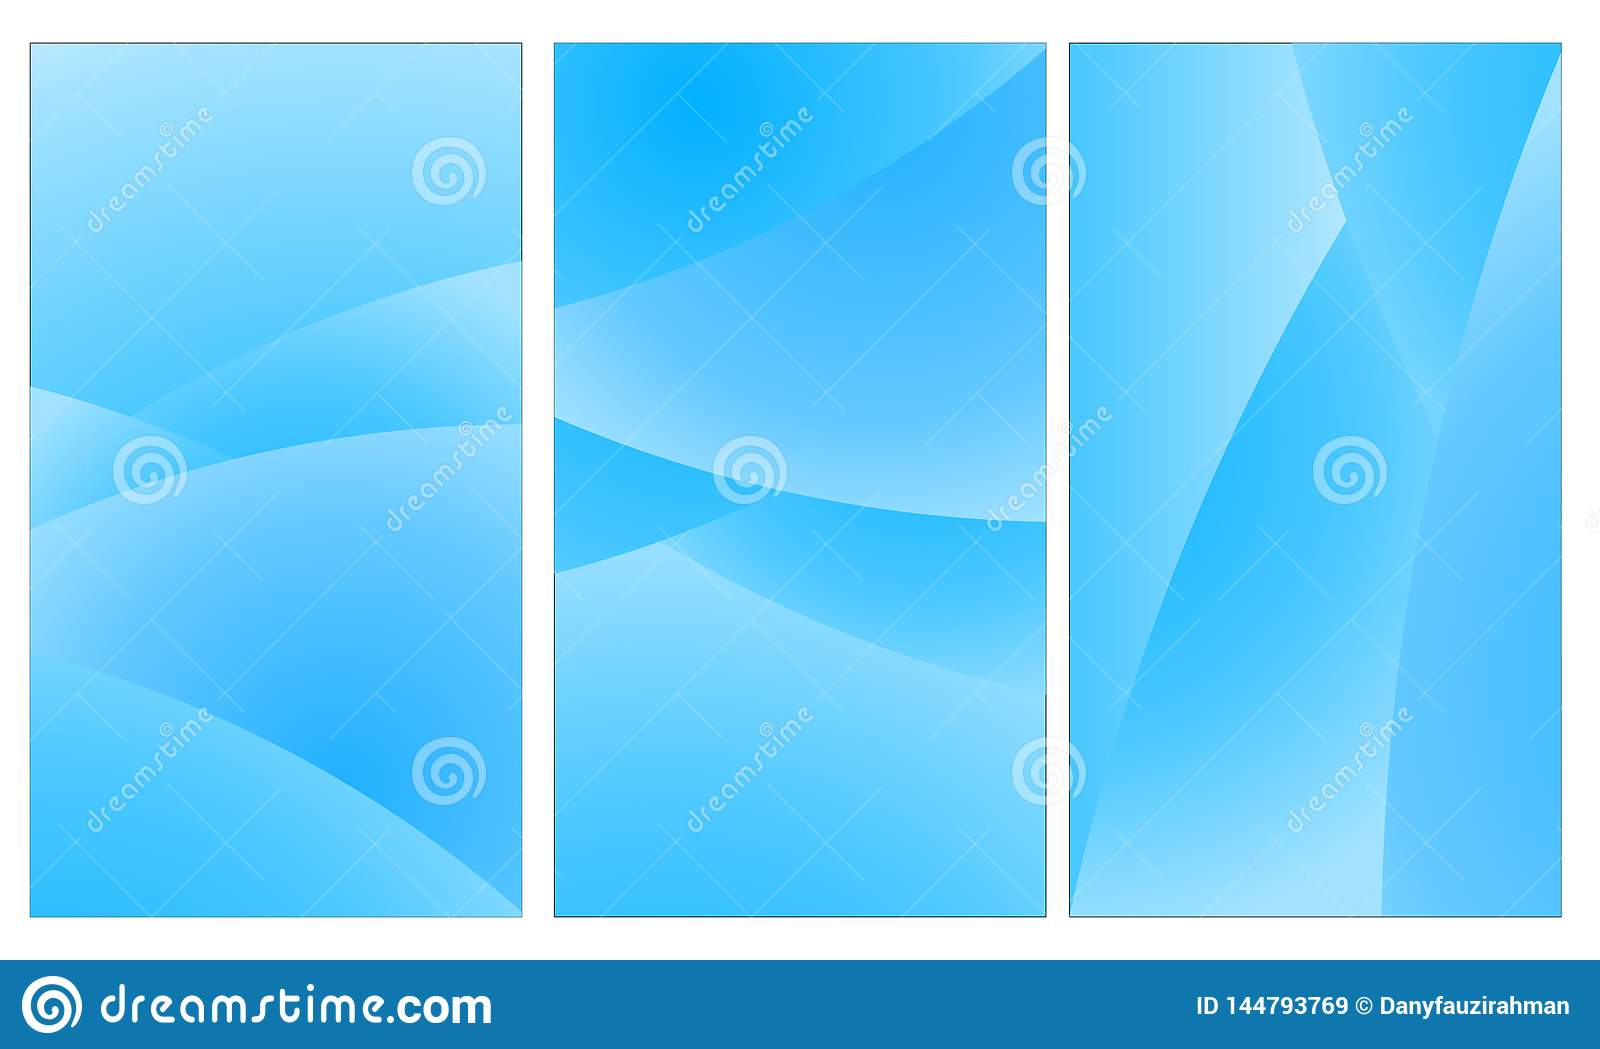 Mobile Wallpaper Abstract Background Geometric Blue Color